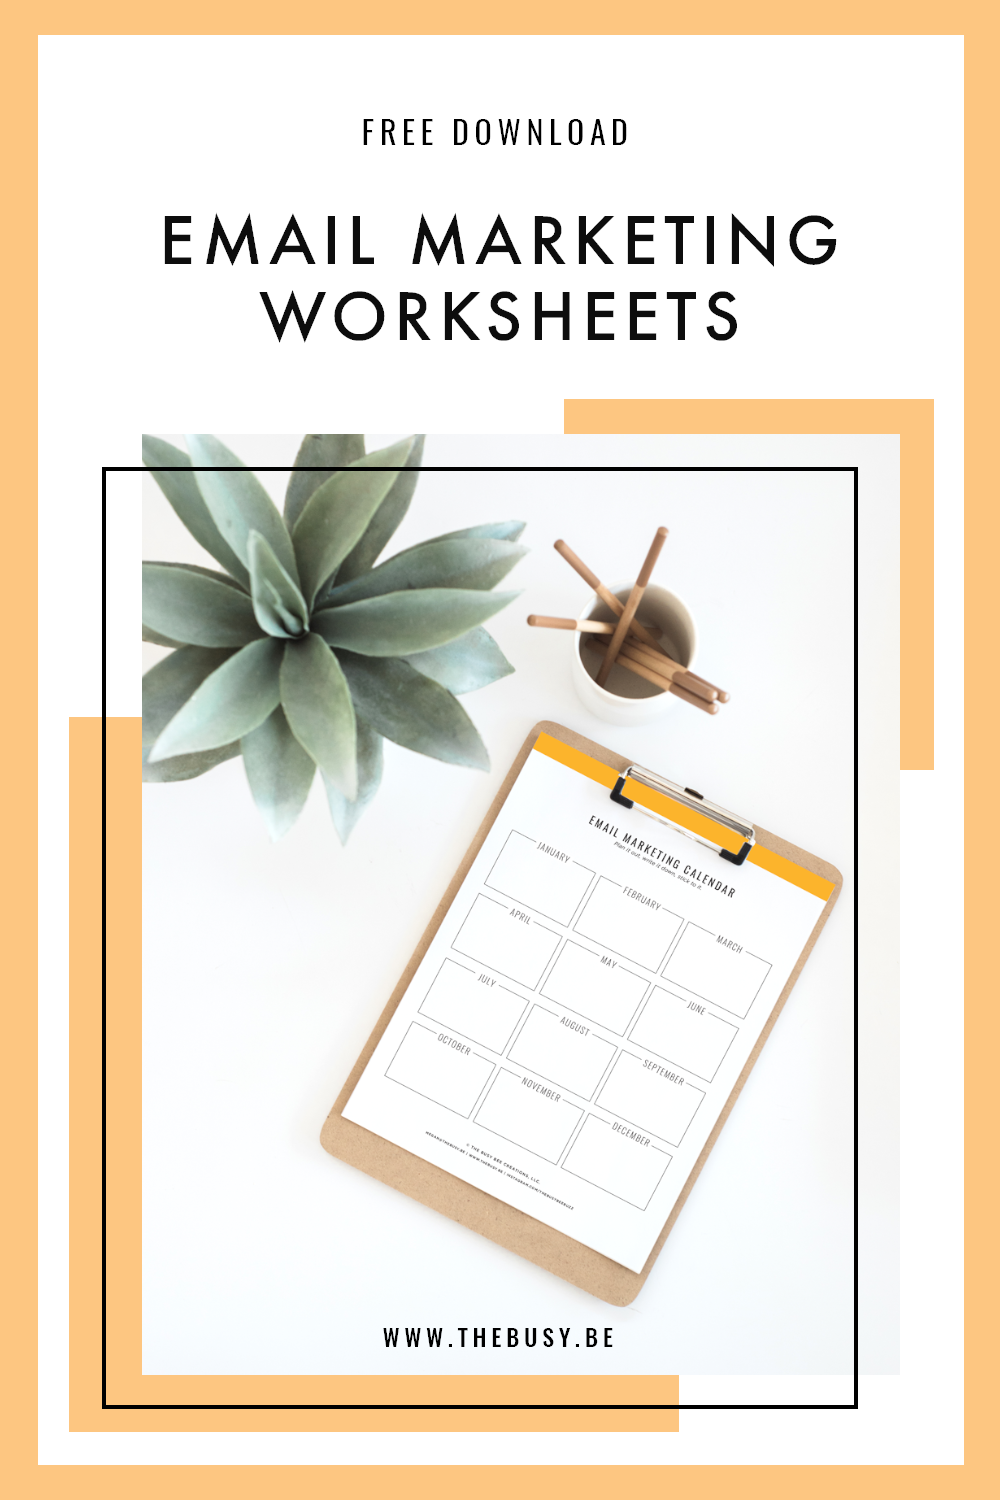 TheBusyBee_Freebie_Email_Marketing_Worksheets.png